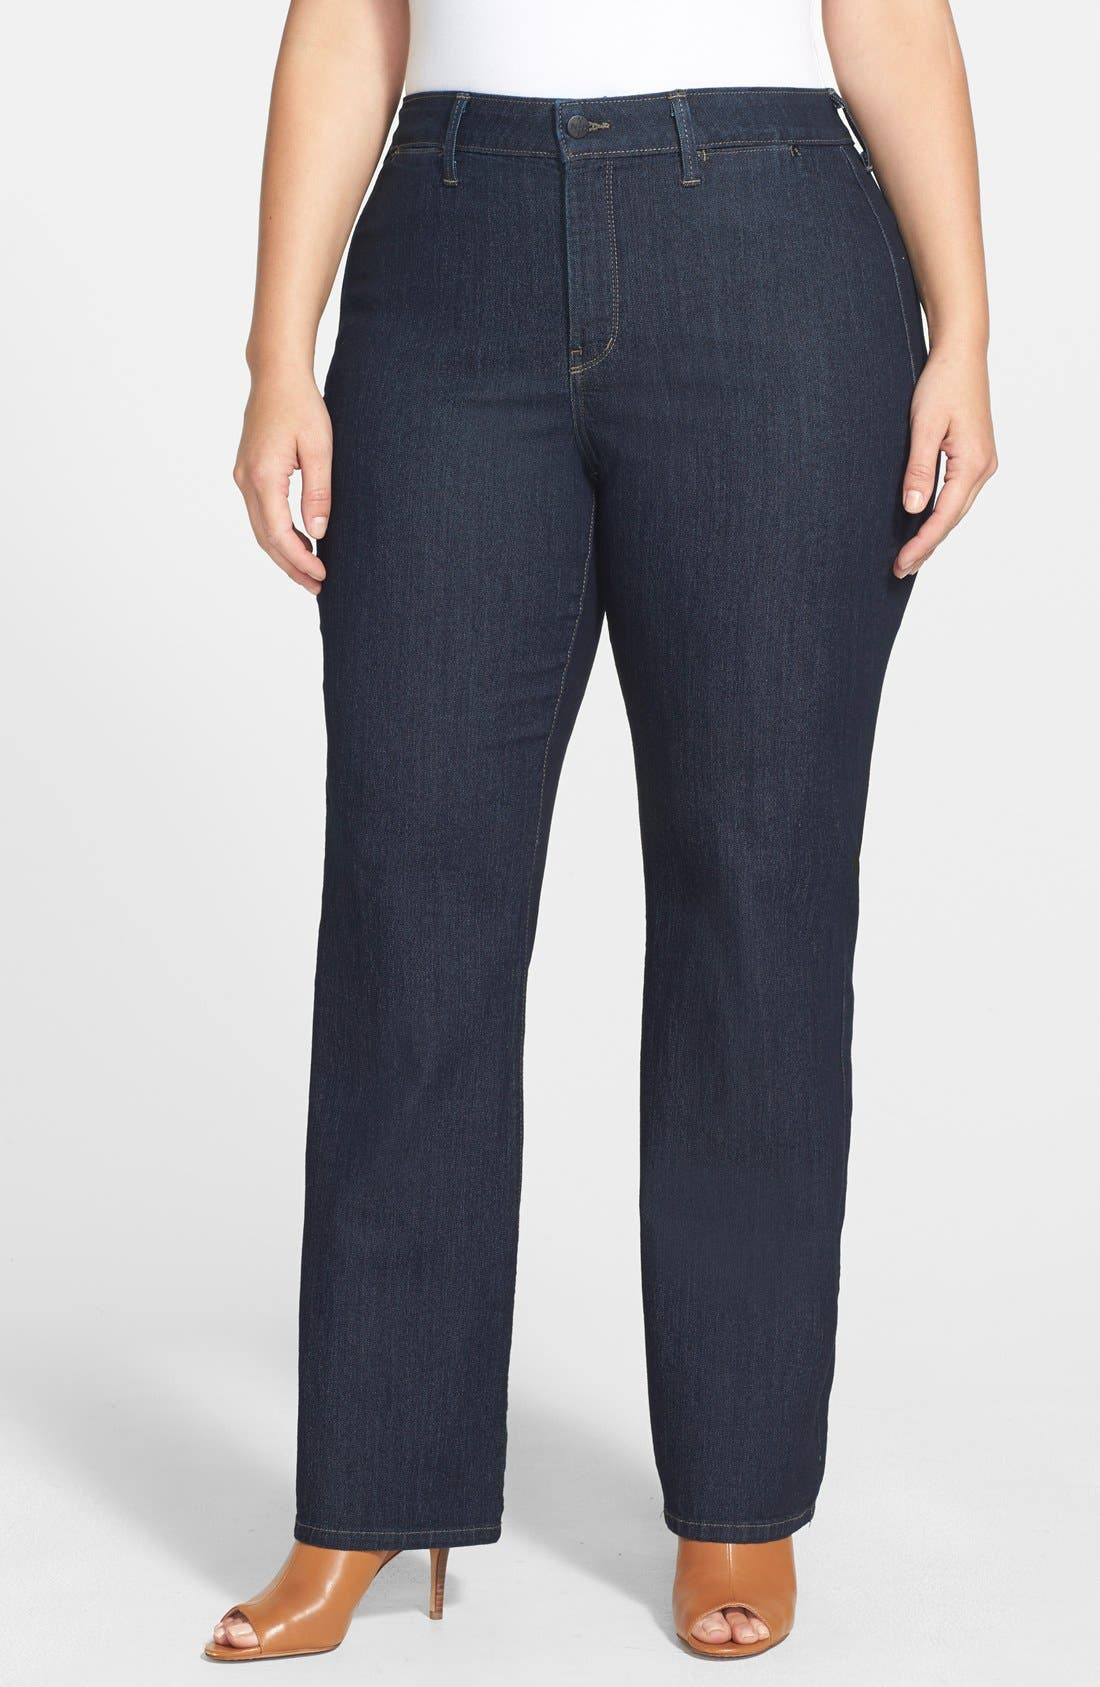 NYDJ, 'Isabella' High Rise Stretch Trouser Jeans, Main thumbnail 1, color, DARK ENZYME